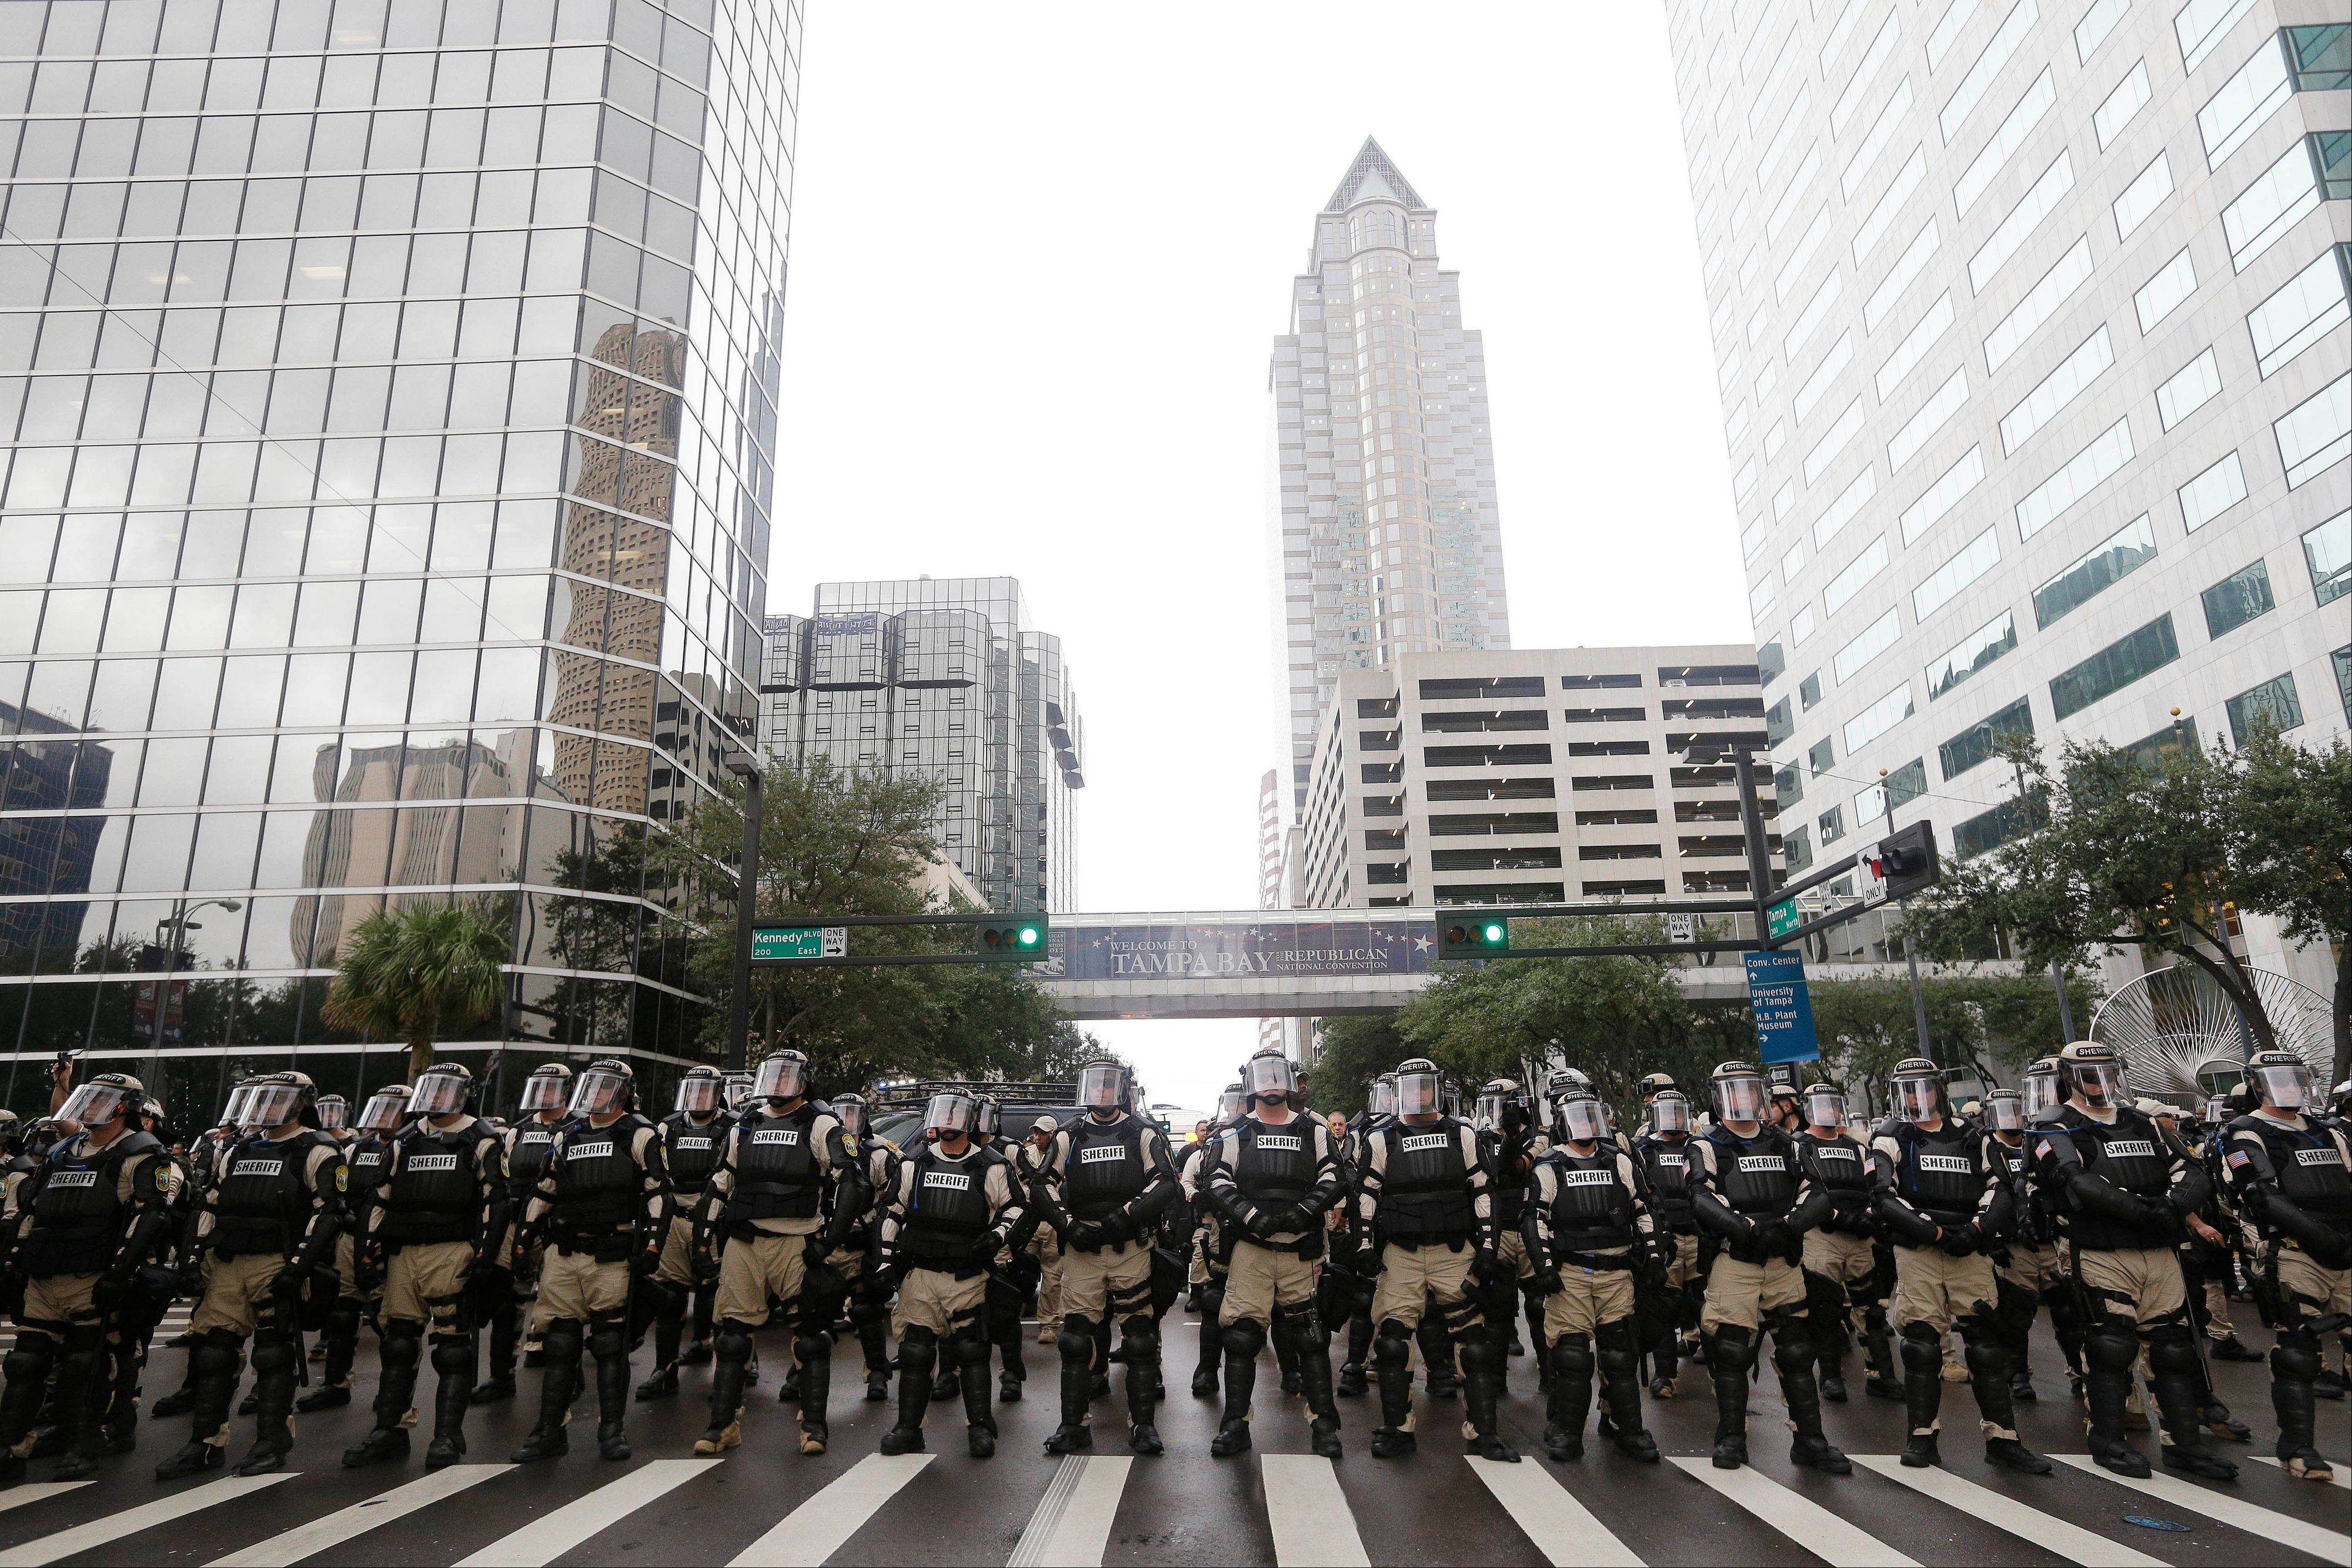 Police officers watch demonstrators marching through the streets of Tampa, Fla., to protest the Republican National Convention on Monday. Here's what tens of thousands of visitors in Tampa during the Republican National Convention will see this week: police. Lots of them.